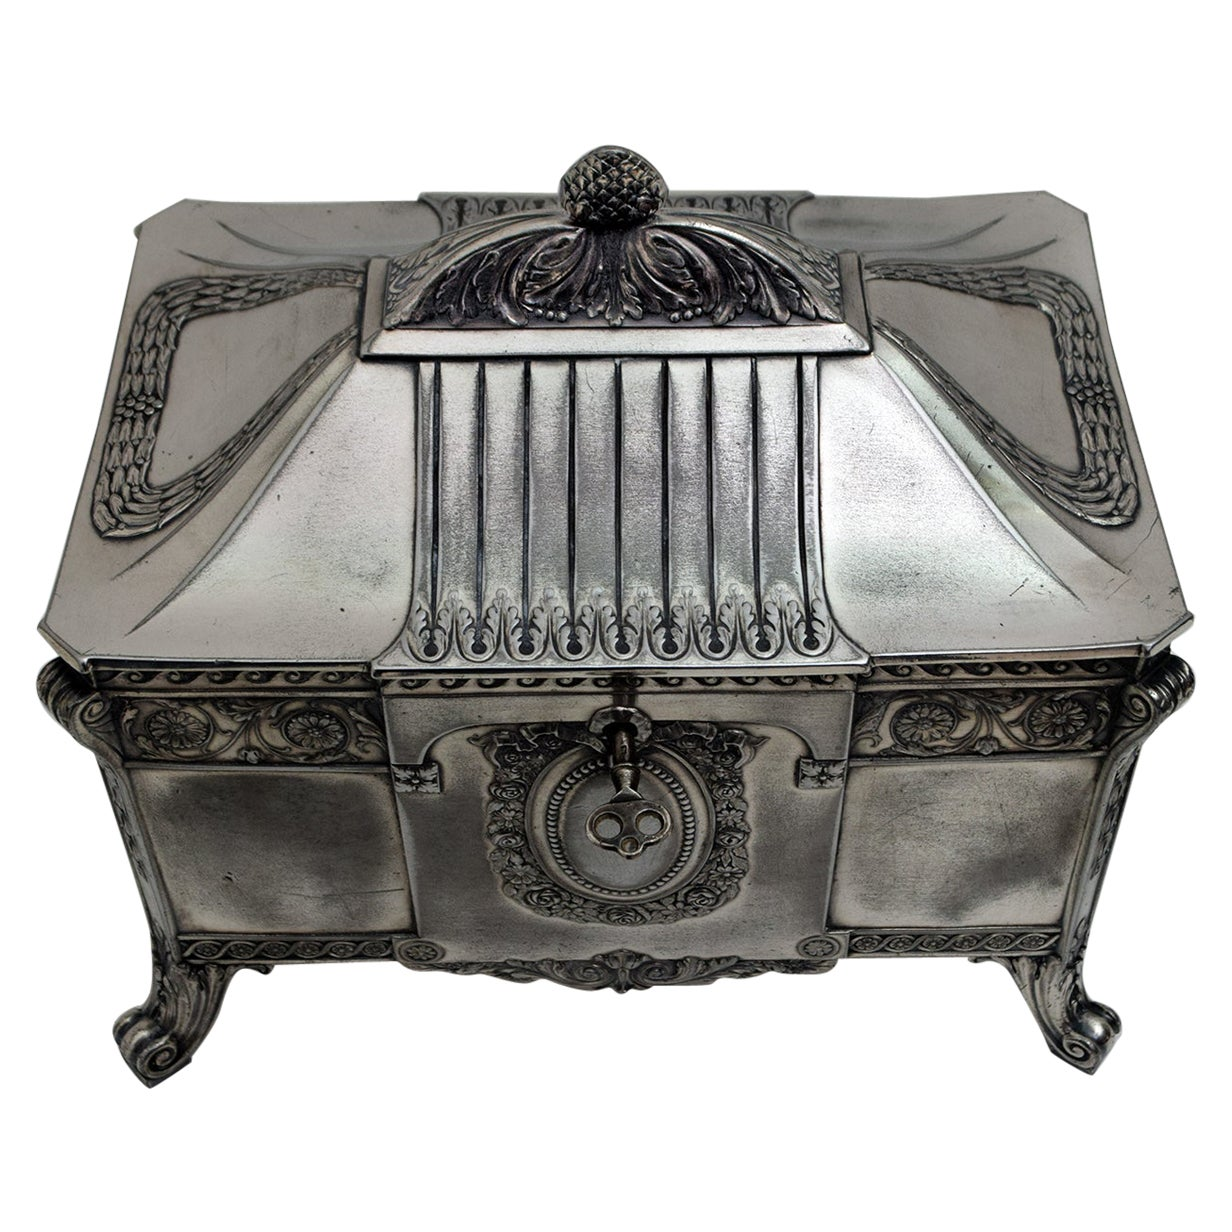 WMF Art Nouveau Germany Silver Plate Jewelery Box, 1900s